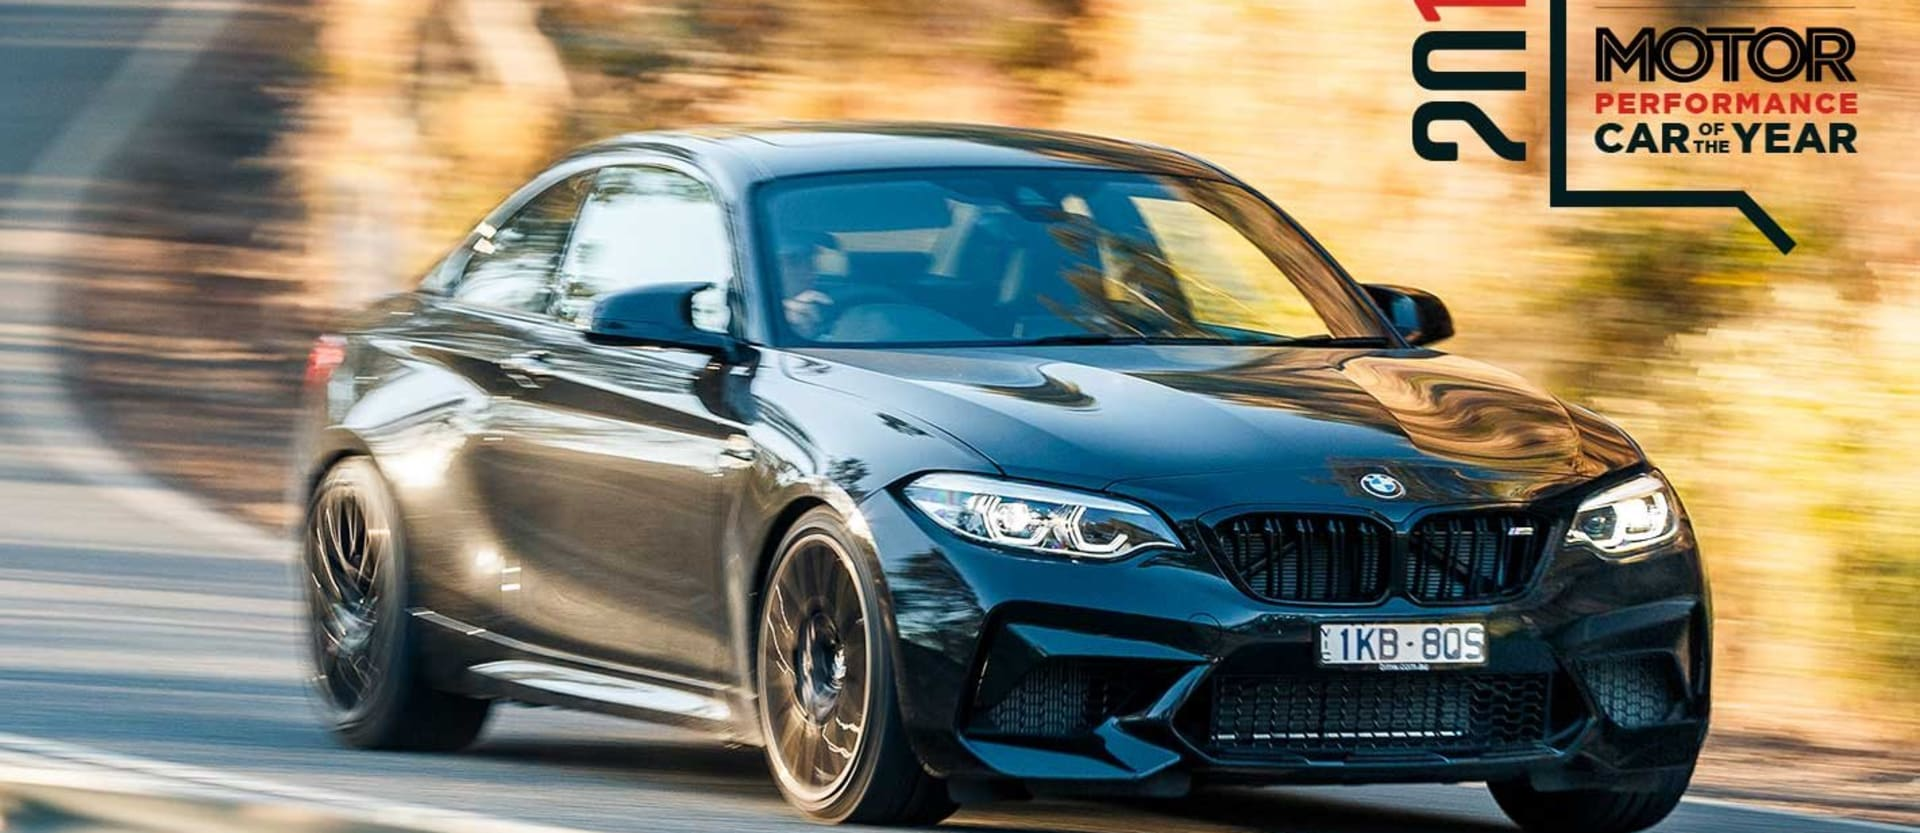 Performance Car of the Year 2019 2nd place BMW M2 Competition